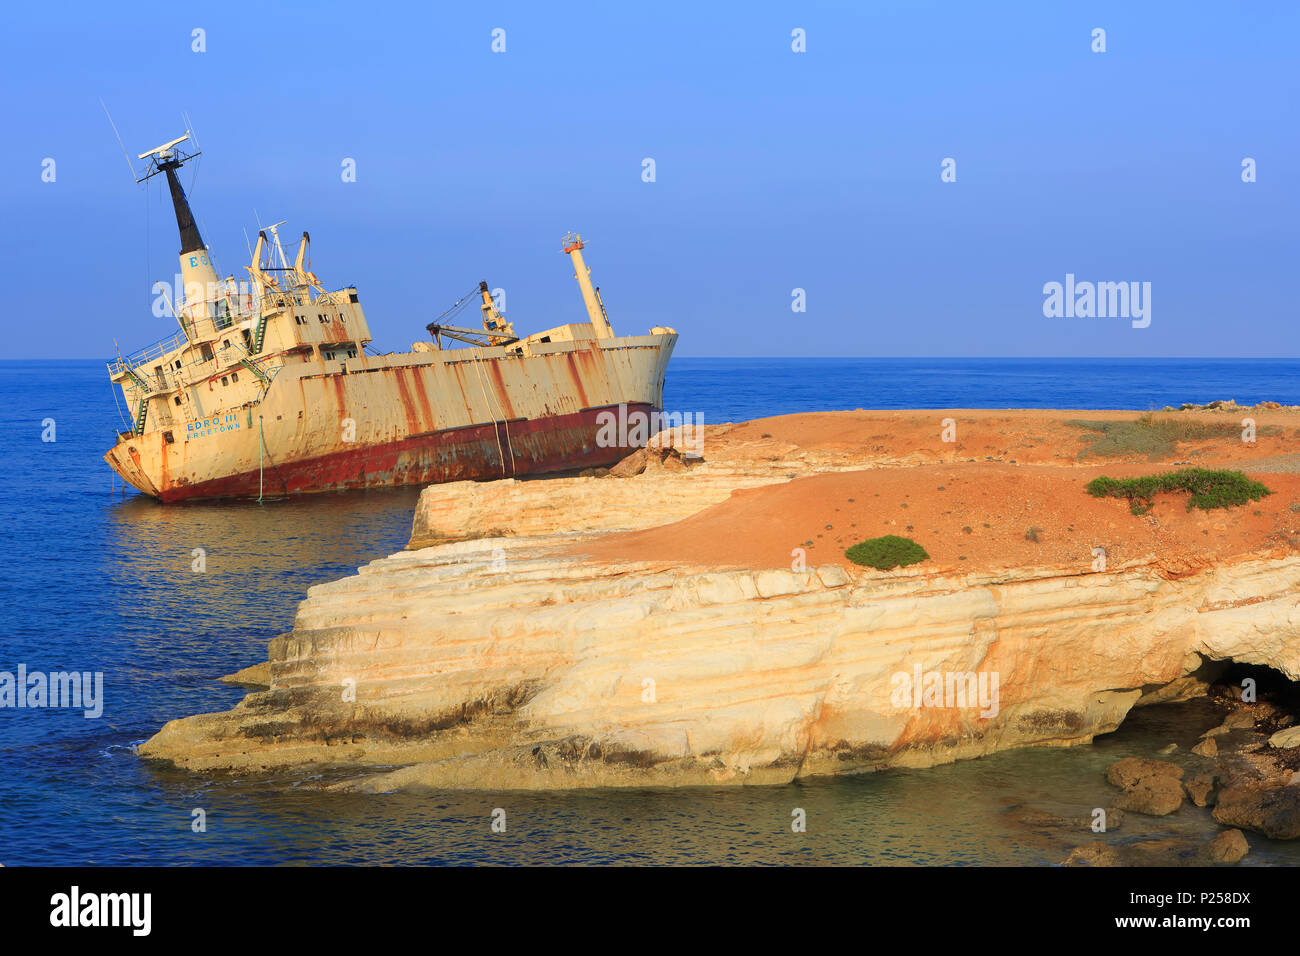 The M/V Edro III shipwreck resting off the rocks near the Sea Caves just outside Pegeia, Cyprus since 2011 - Stock Image